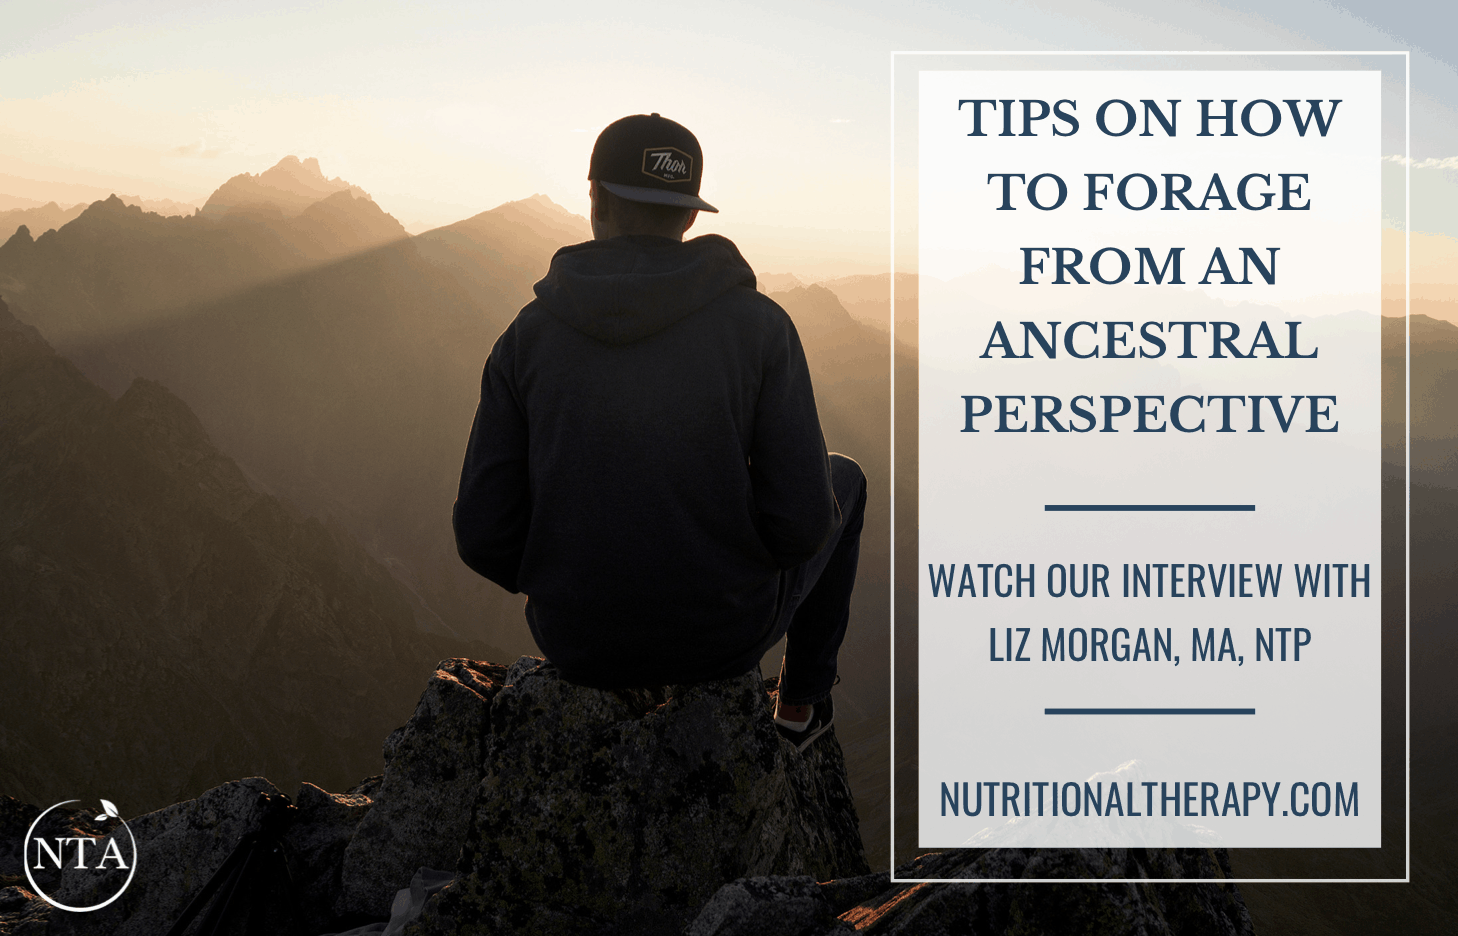 Tips On How To Forage From An Ancestral Perspective